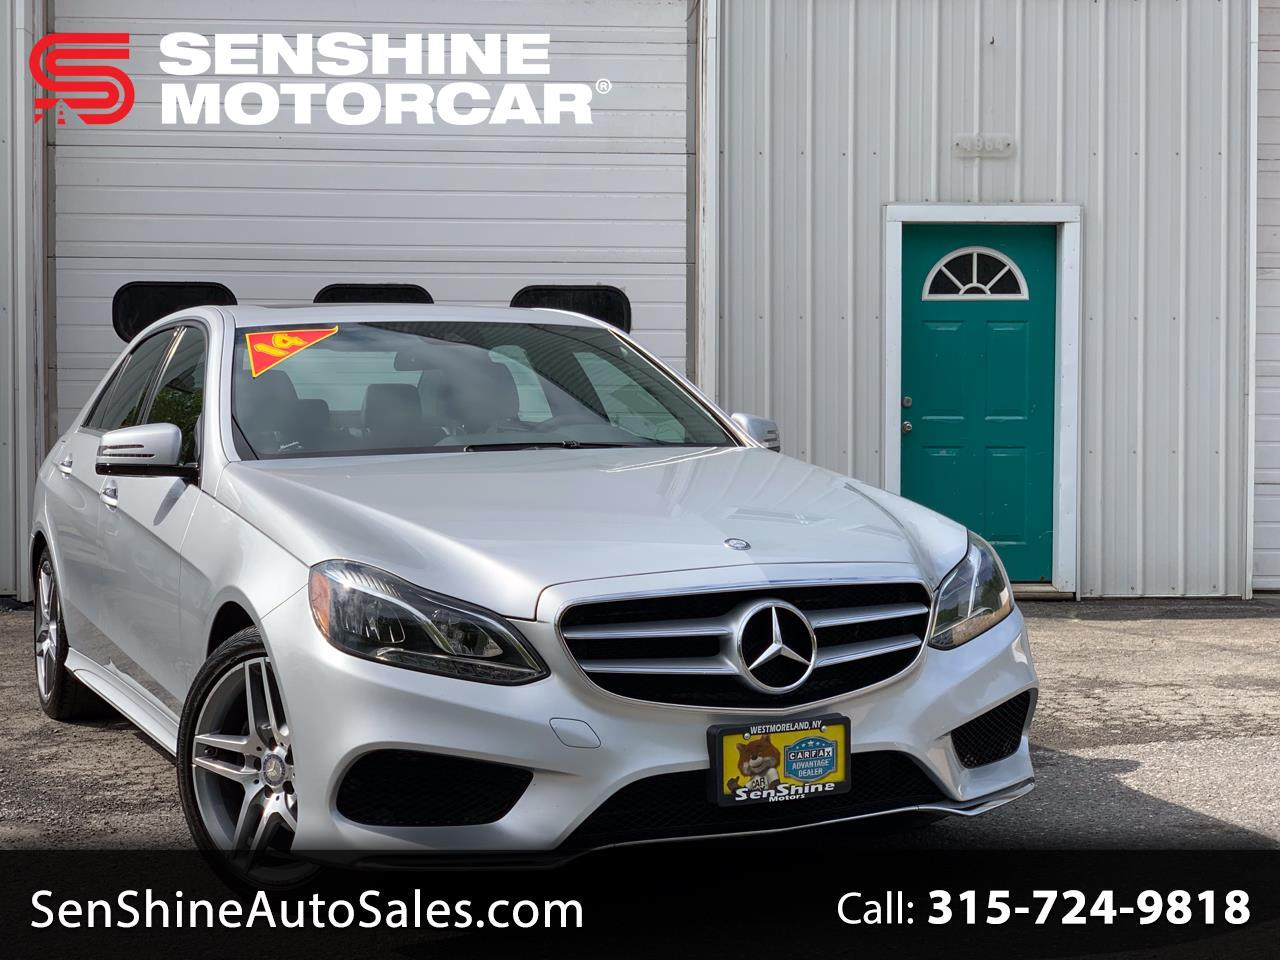 2014 Mercedes-Benz E-Class 4dr Sdn E 350 Luxury 4MATIC